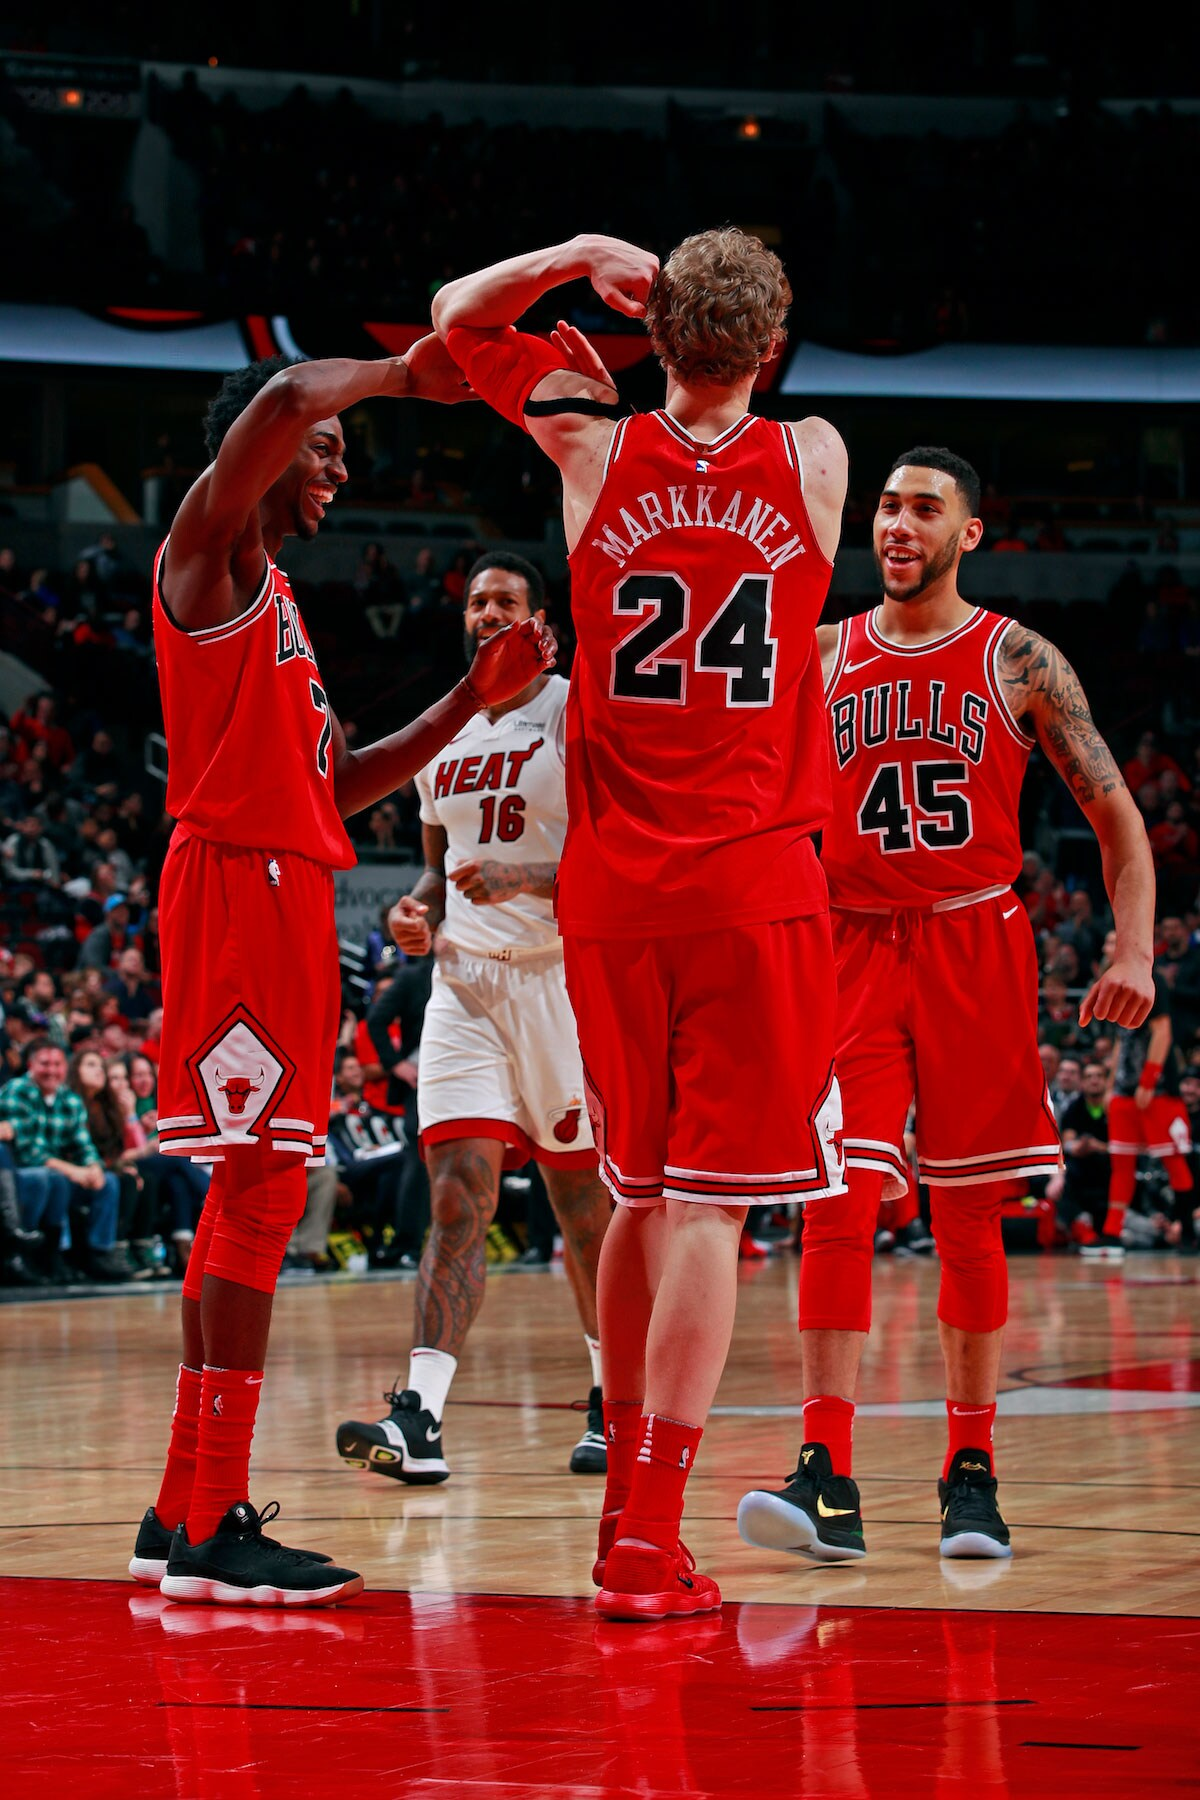 Lauri Markkanen #24 of the Chicago Bulls celebrates while flexing during the game against the Miami Heat on January 15, 2018 at the United Center in Chicago, Illinois